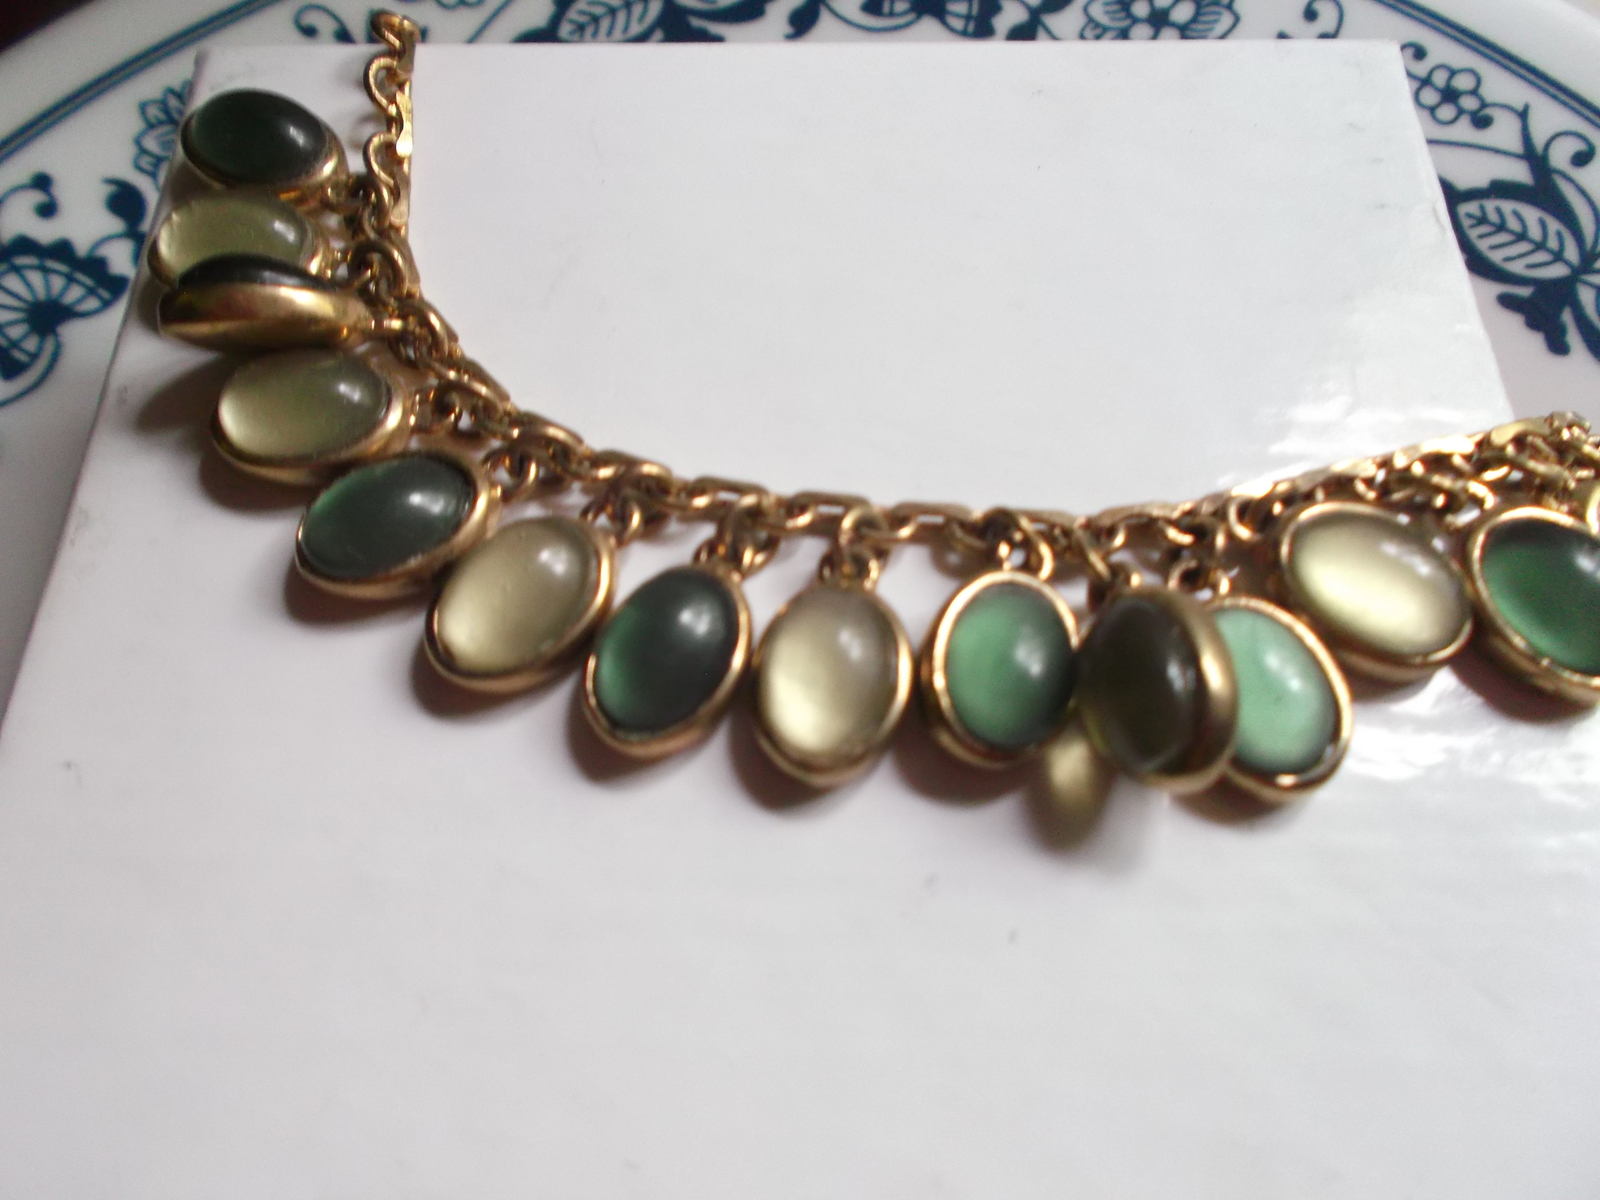 Primary image for Necklace of Green Cabochon Set Stones on Gold Tone Chain With Lobster Claw Clasp